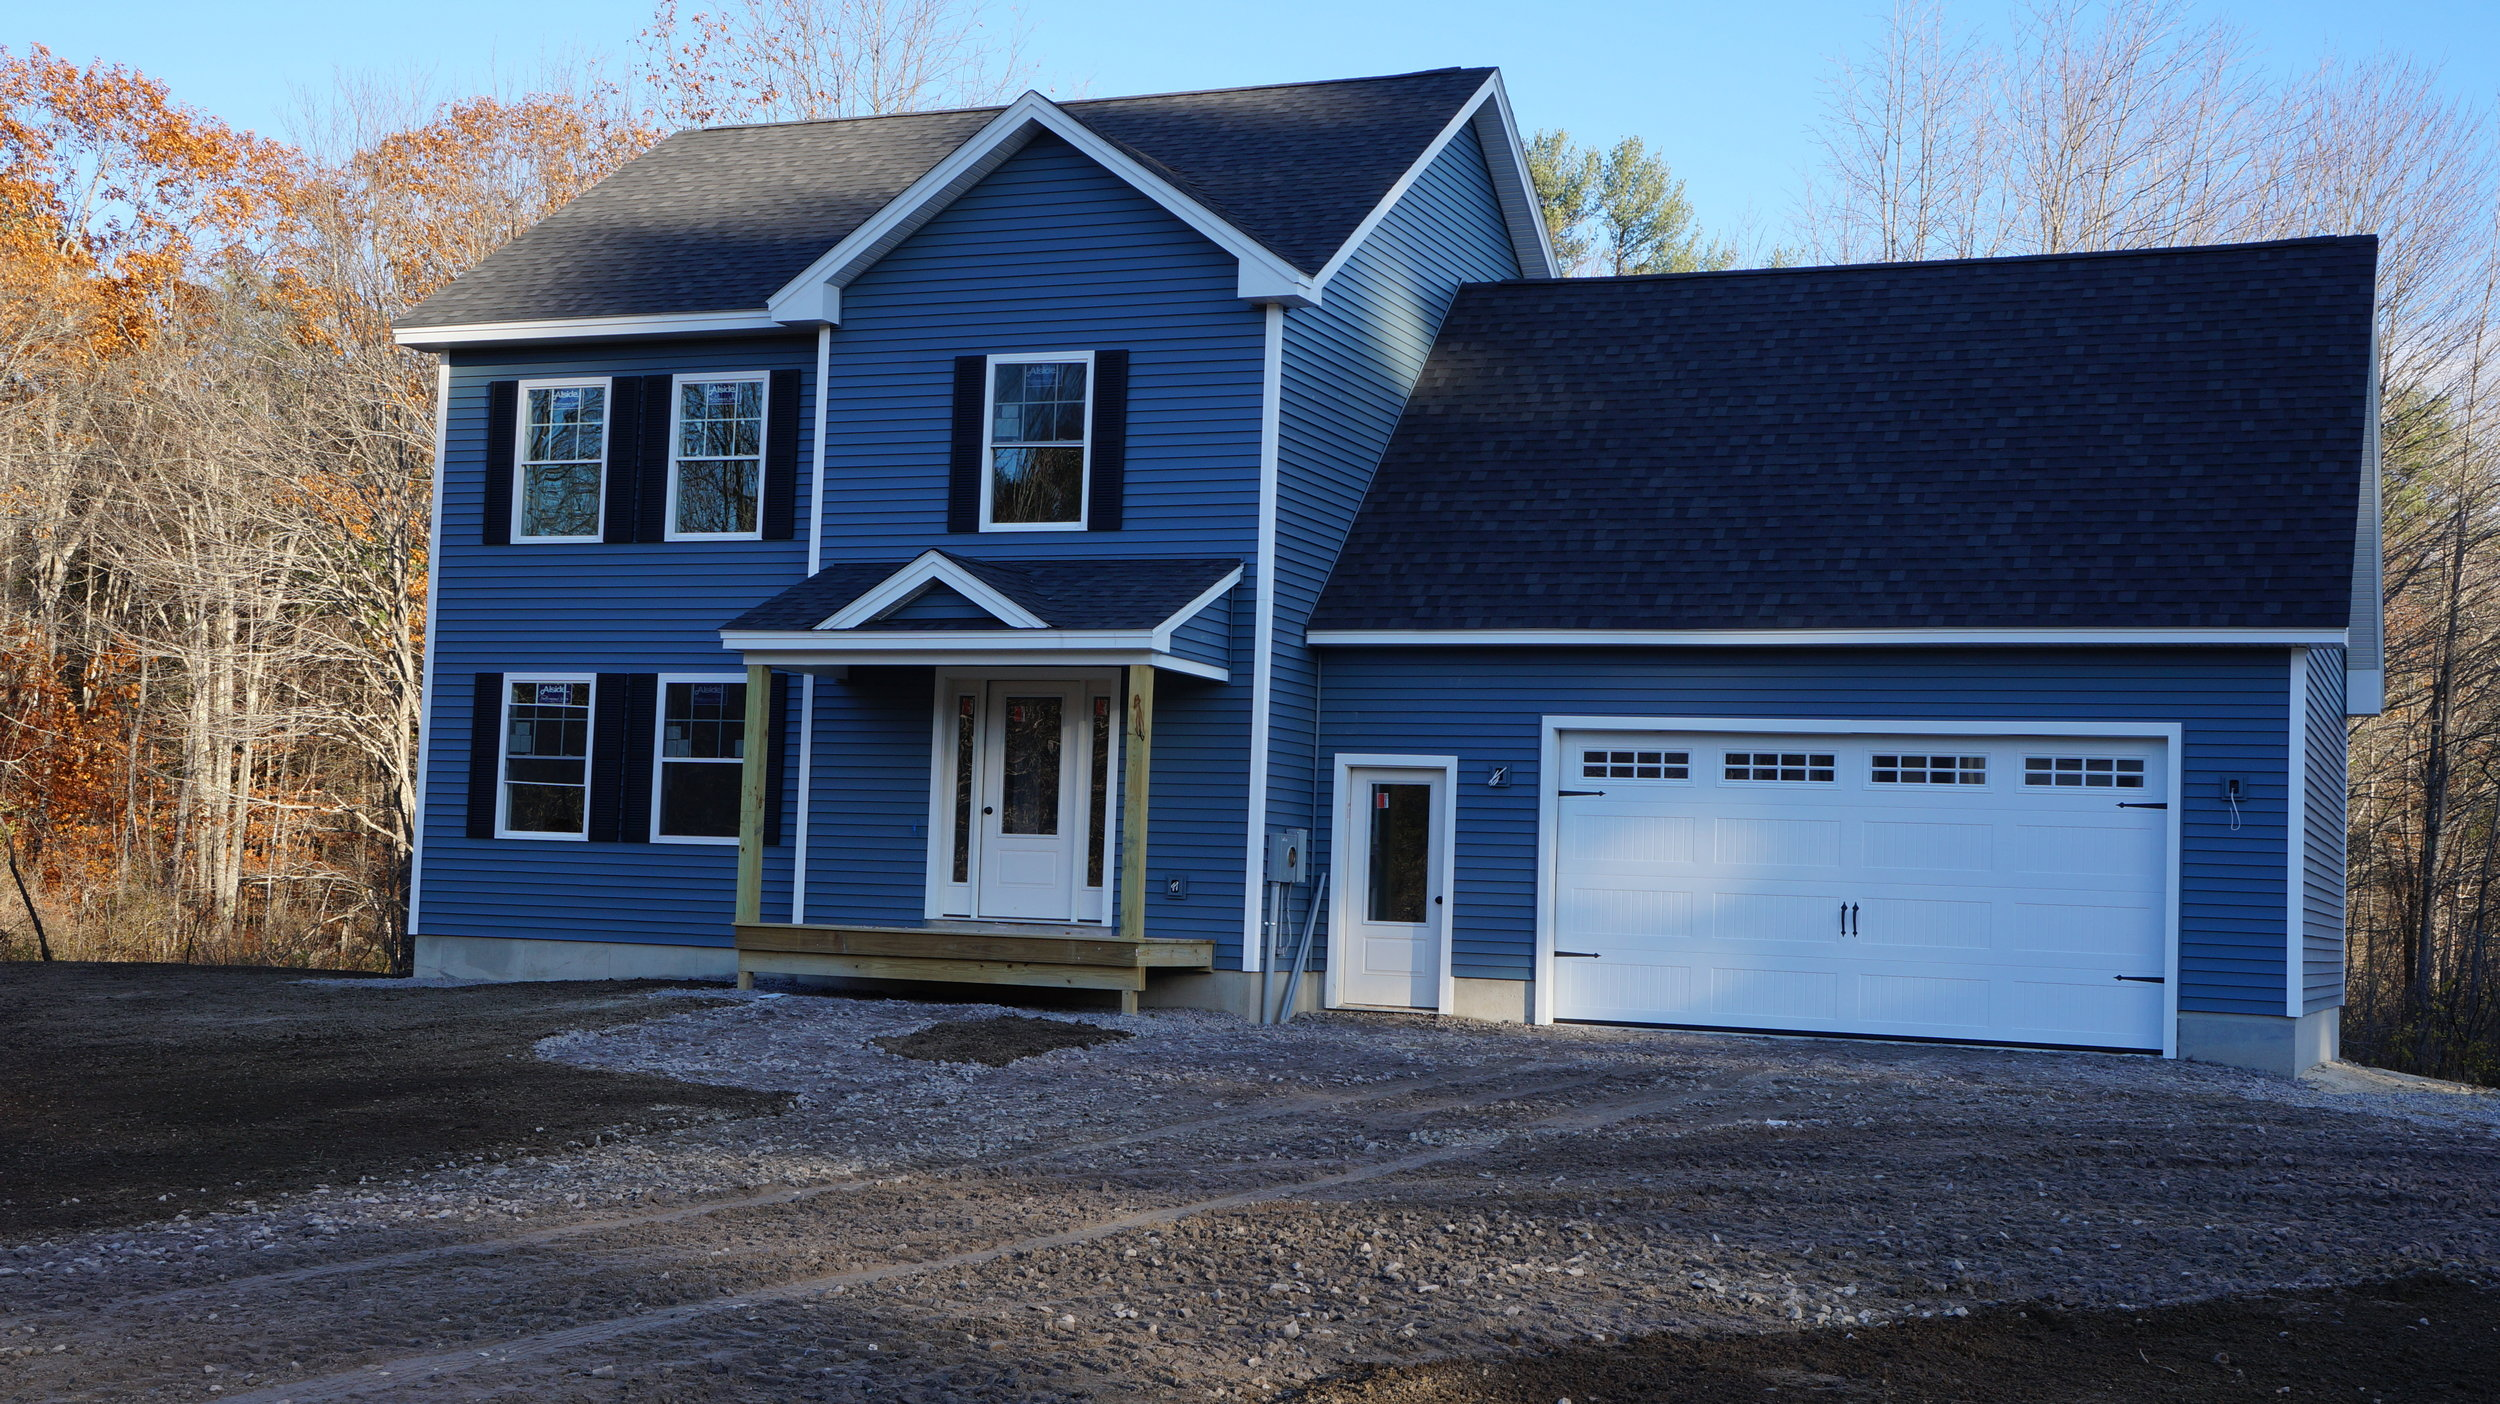 11 Charlan Windham, Maine For Sale Exterior